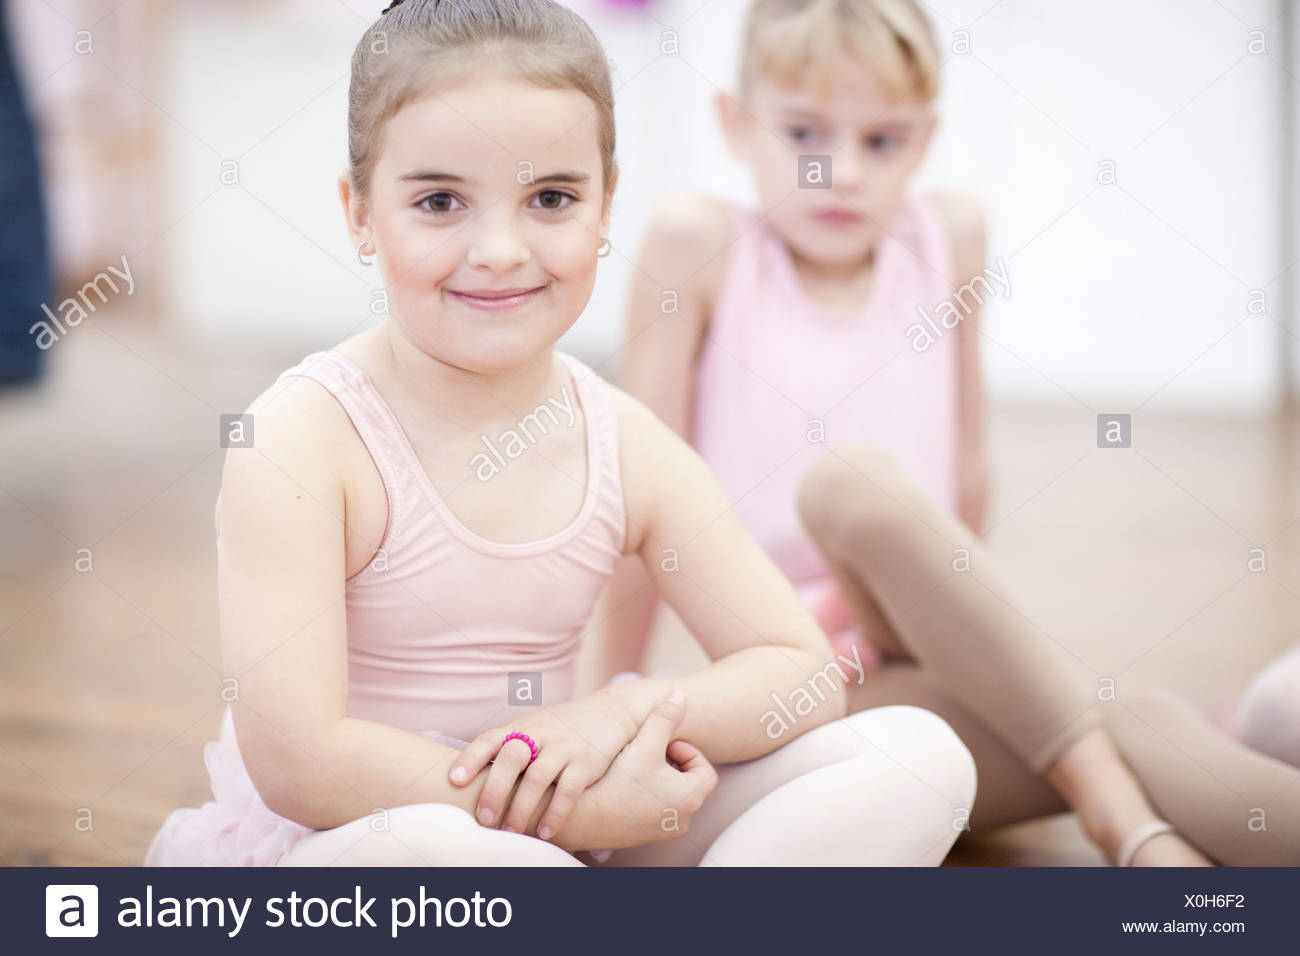 Two young ballerinas sitting on floor - Stock Image